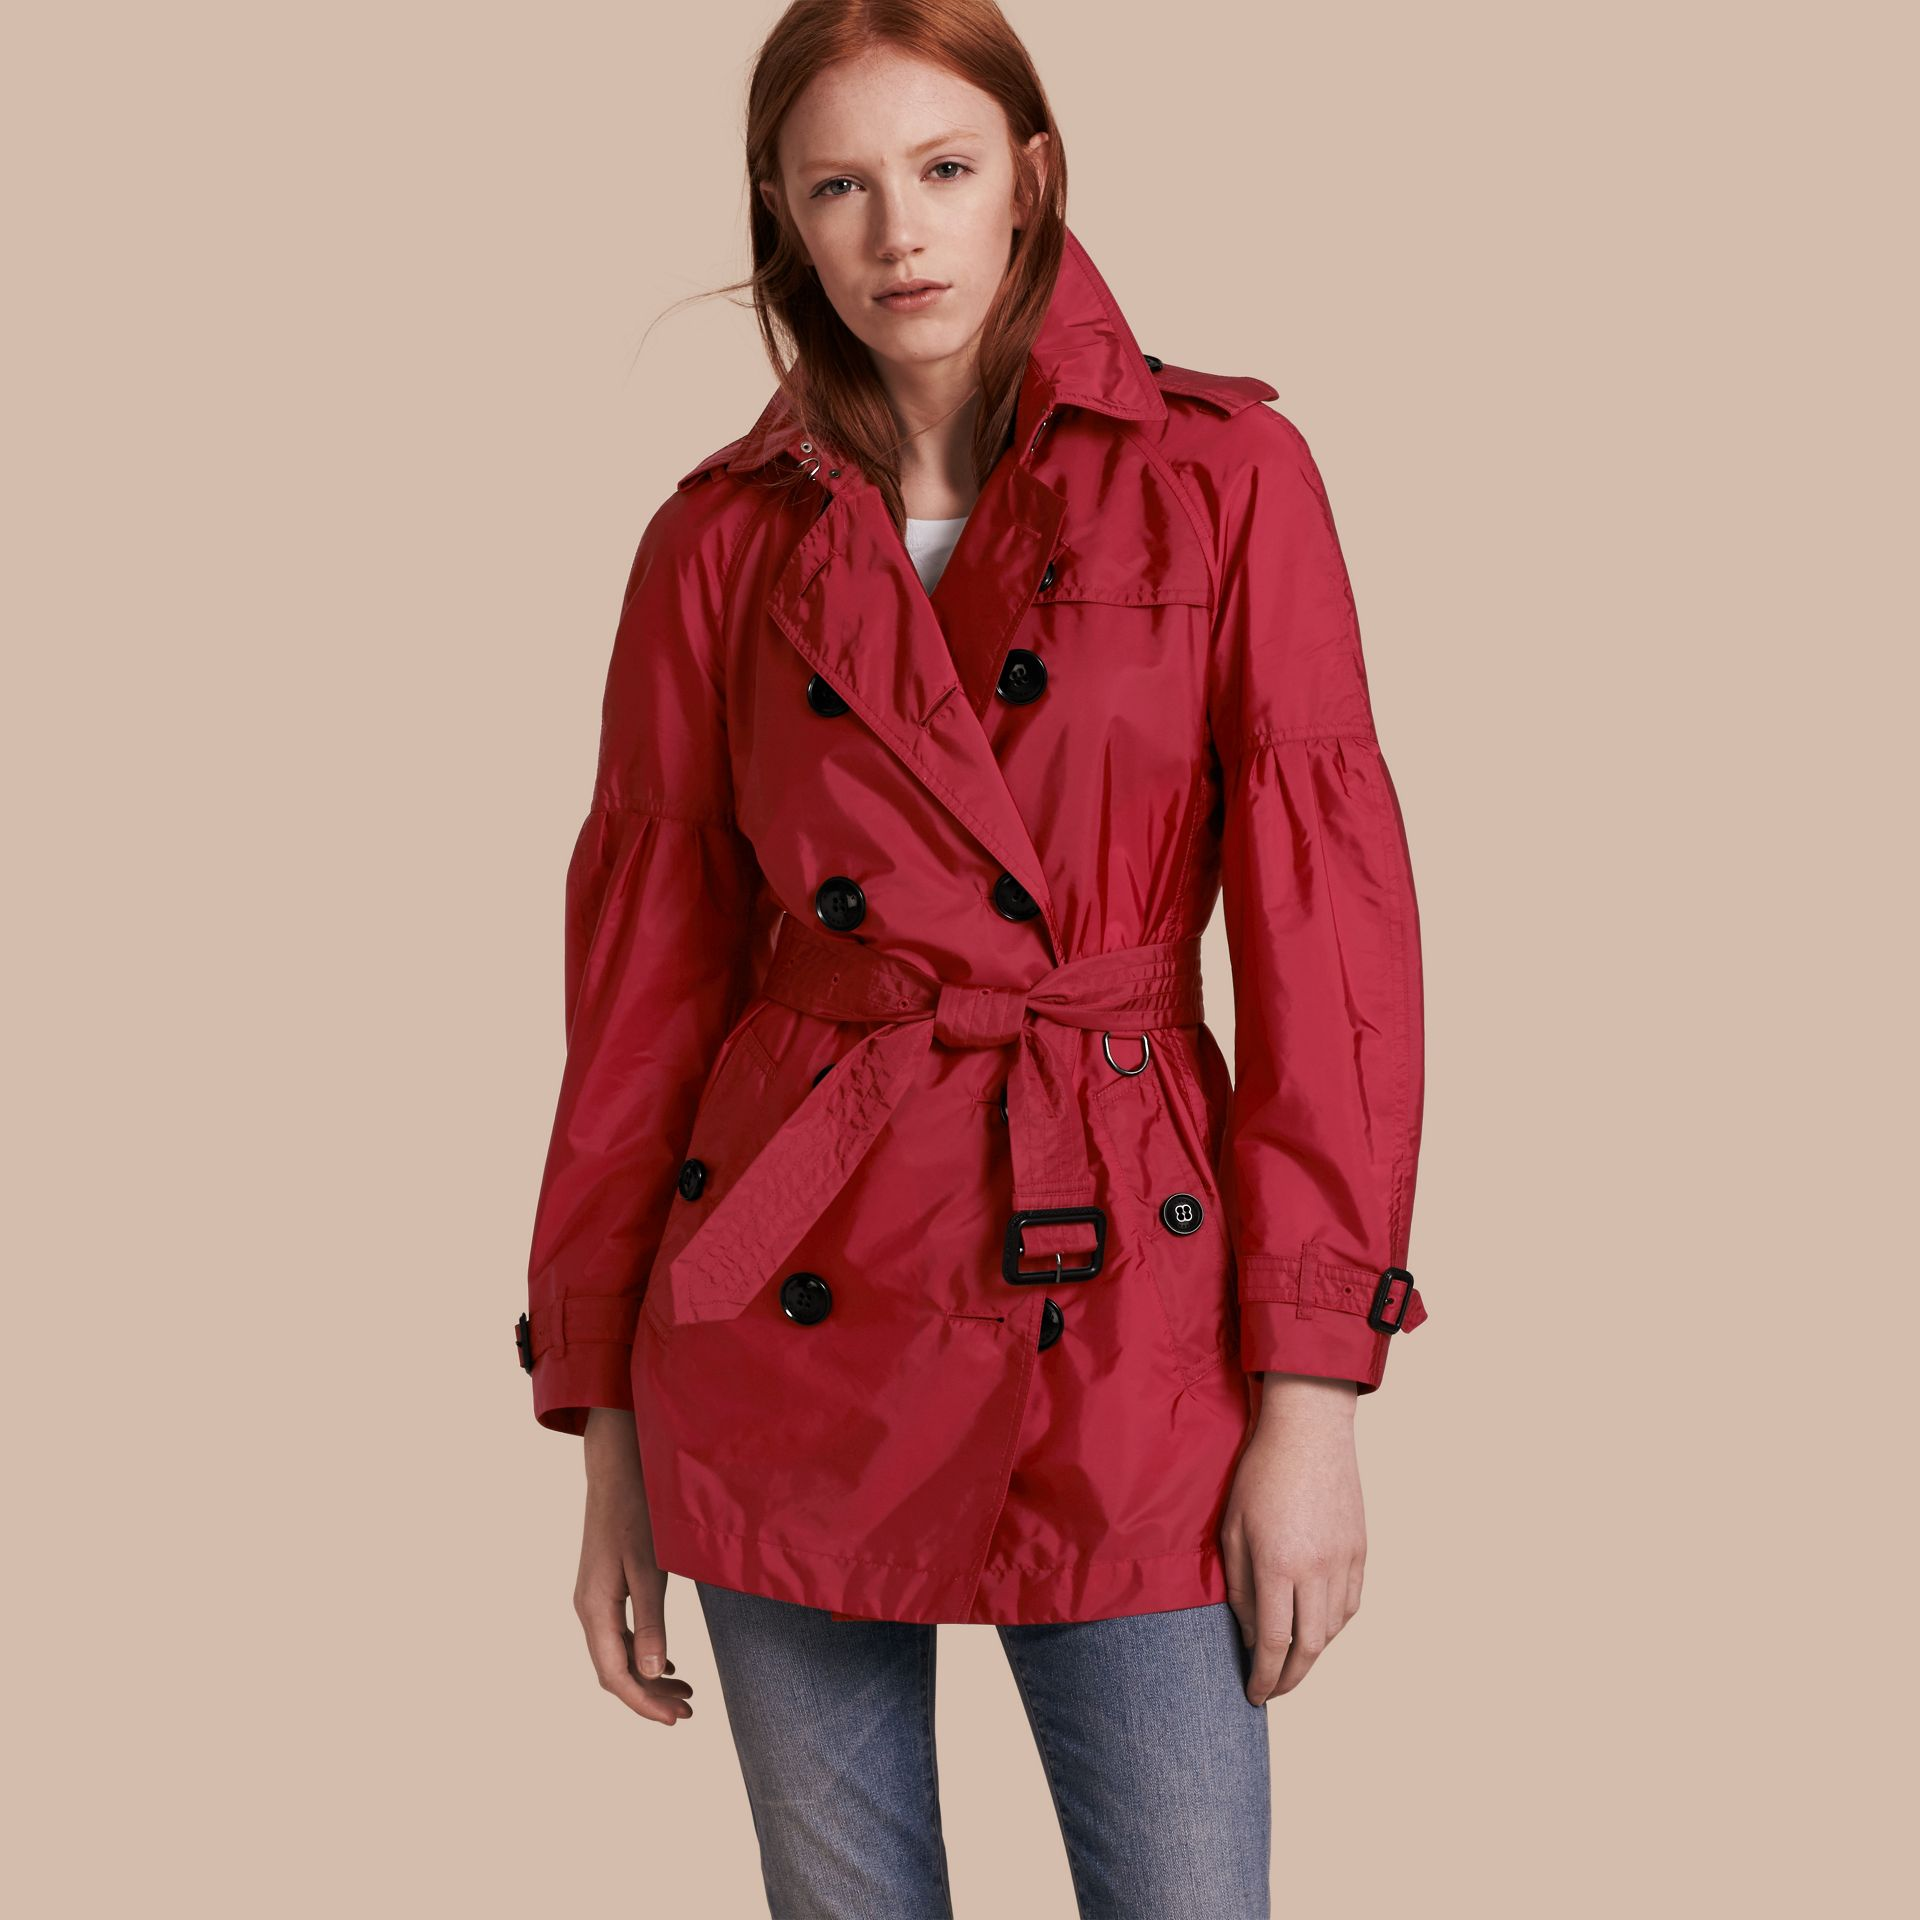 Parade red Packaway Trench Coat with Puff Sleeves - gallery image 7